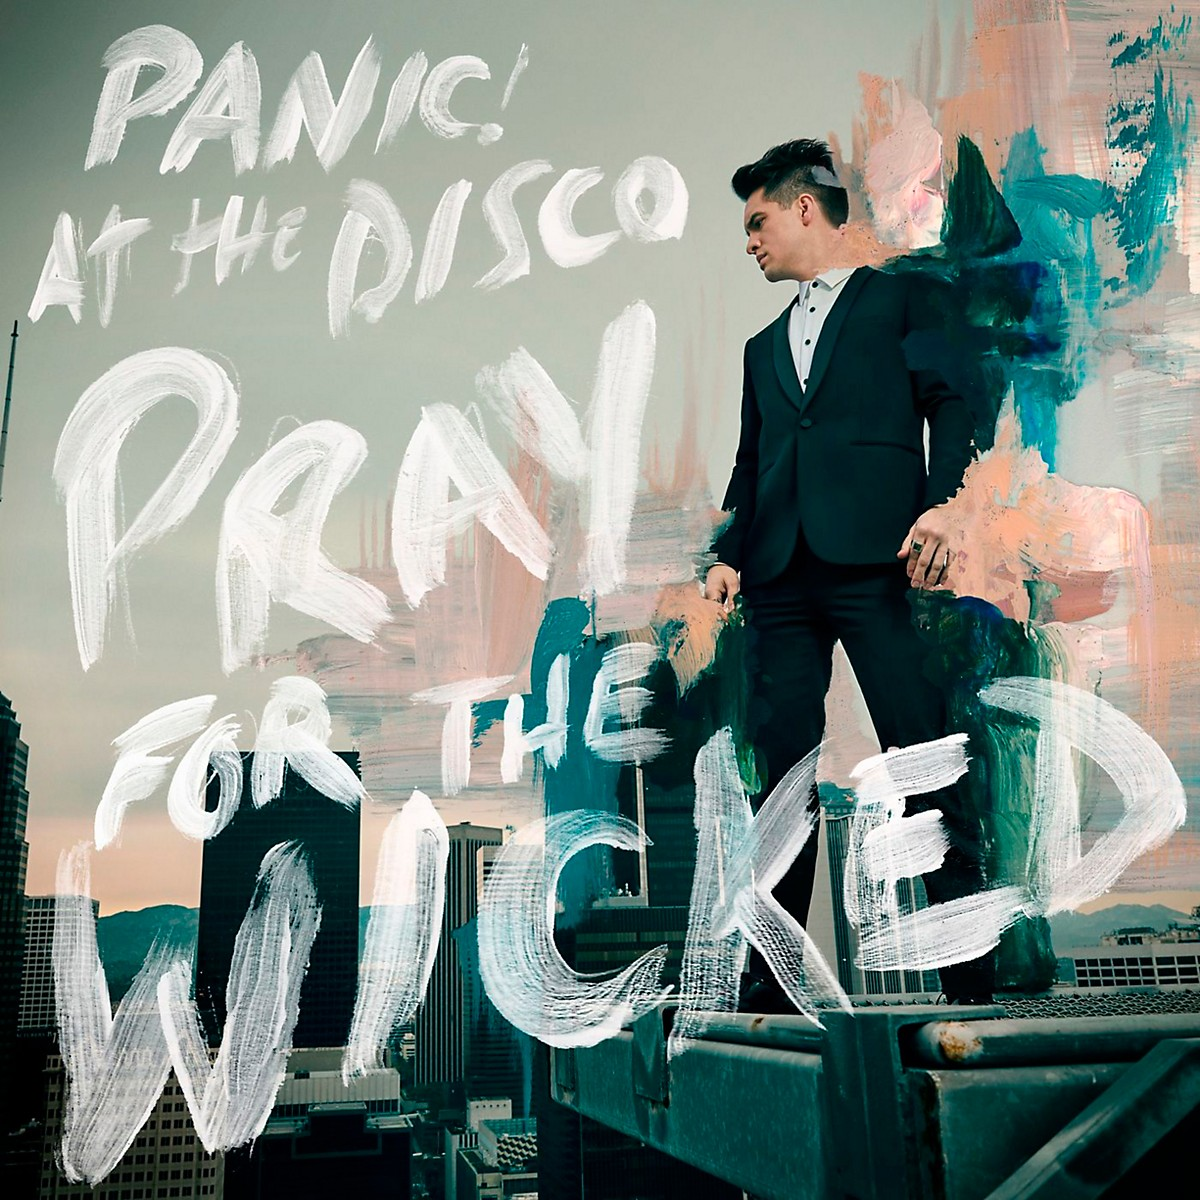 WEA Panic! At The Disco - Pray For The Wicked (Vinyl LP W/Digital Download)